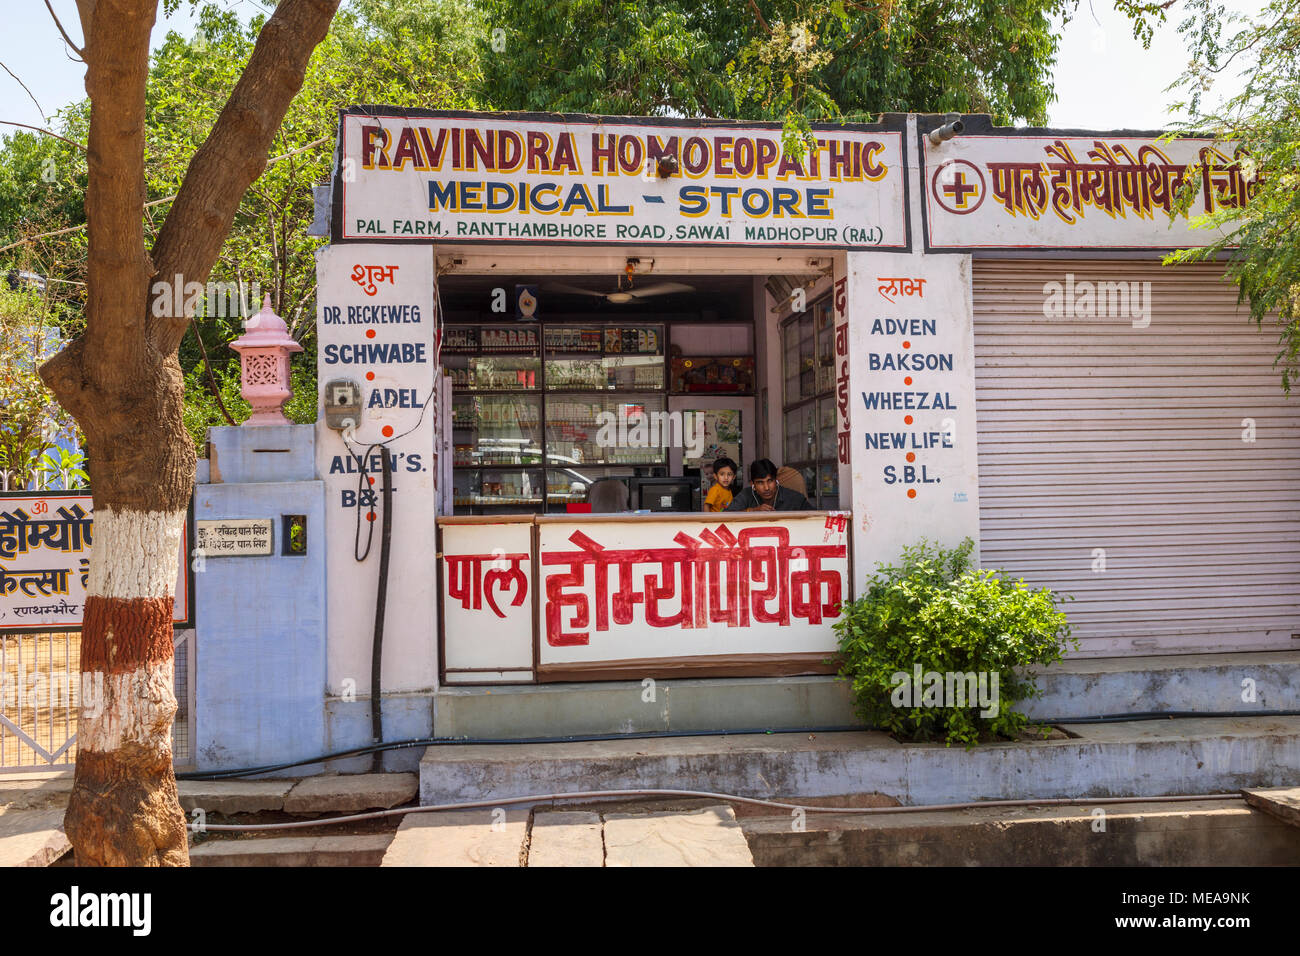 Roadside Pharmacy Homeopathic Medical Store In Sawai